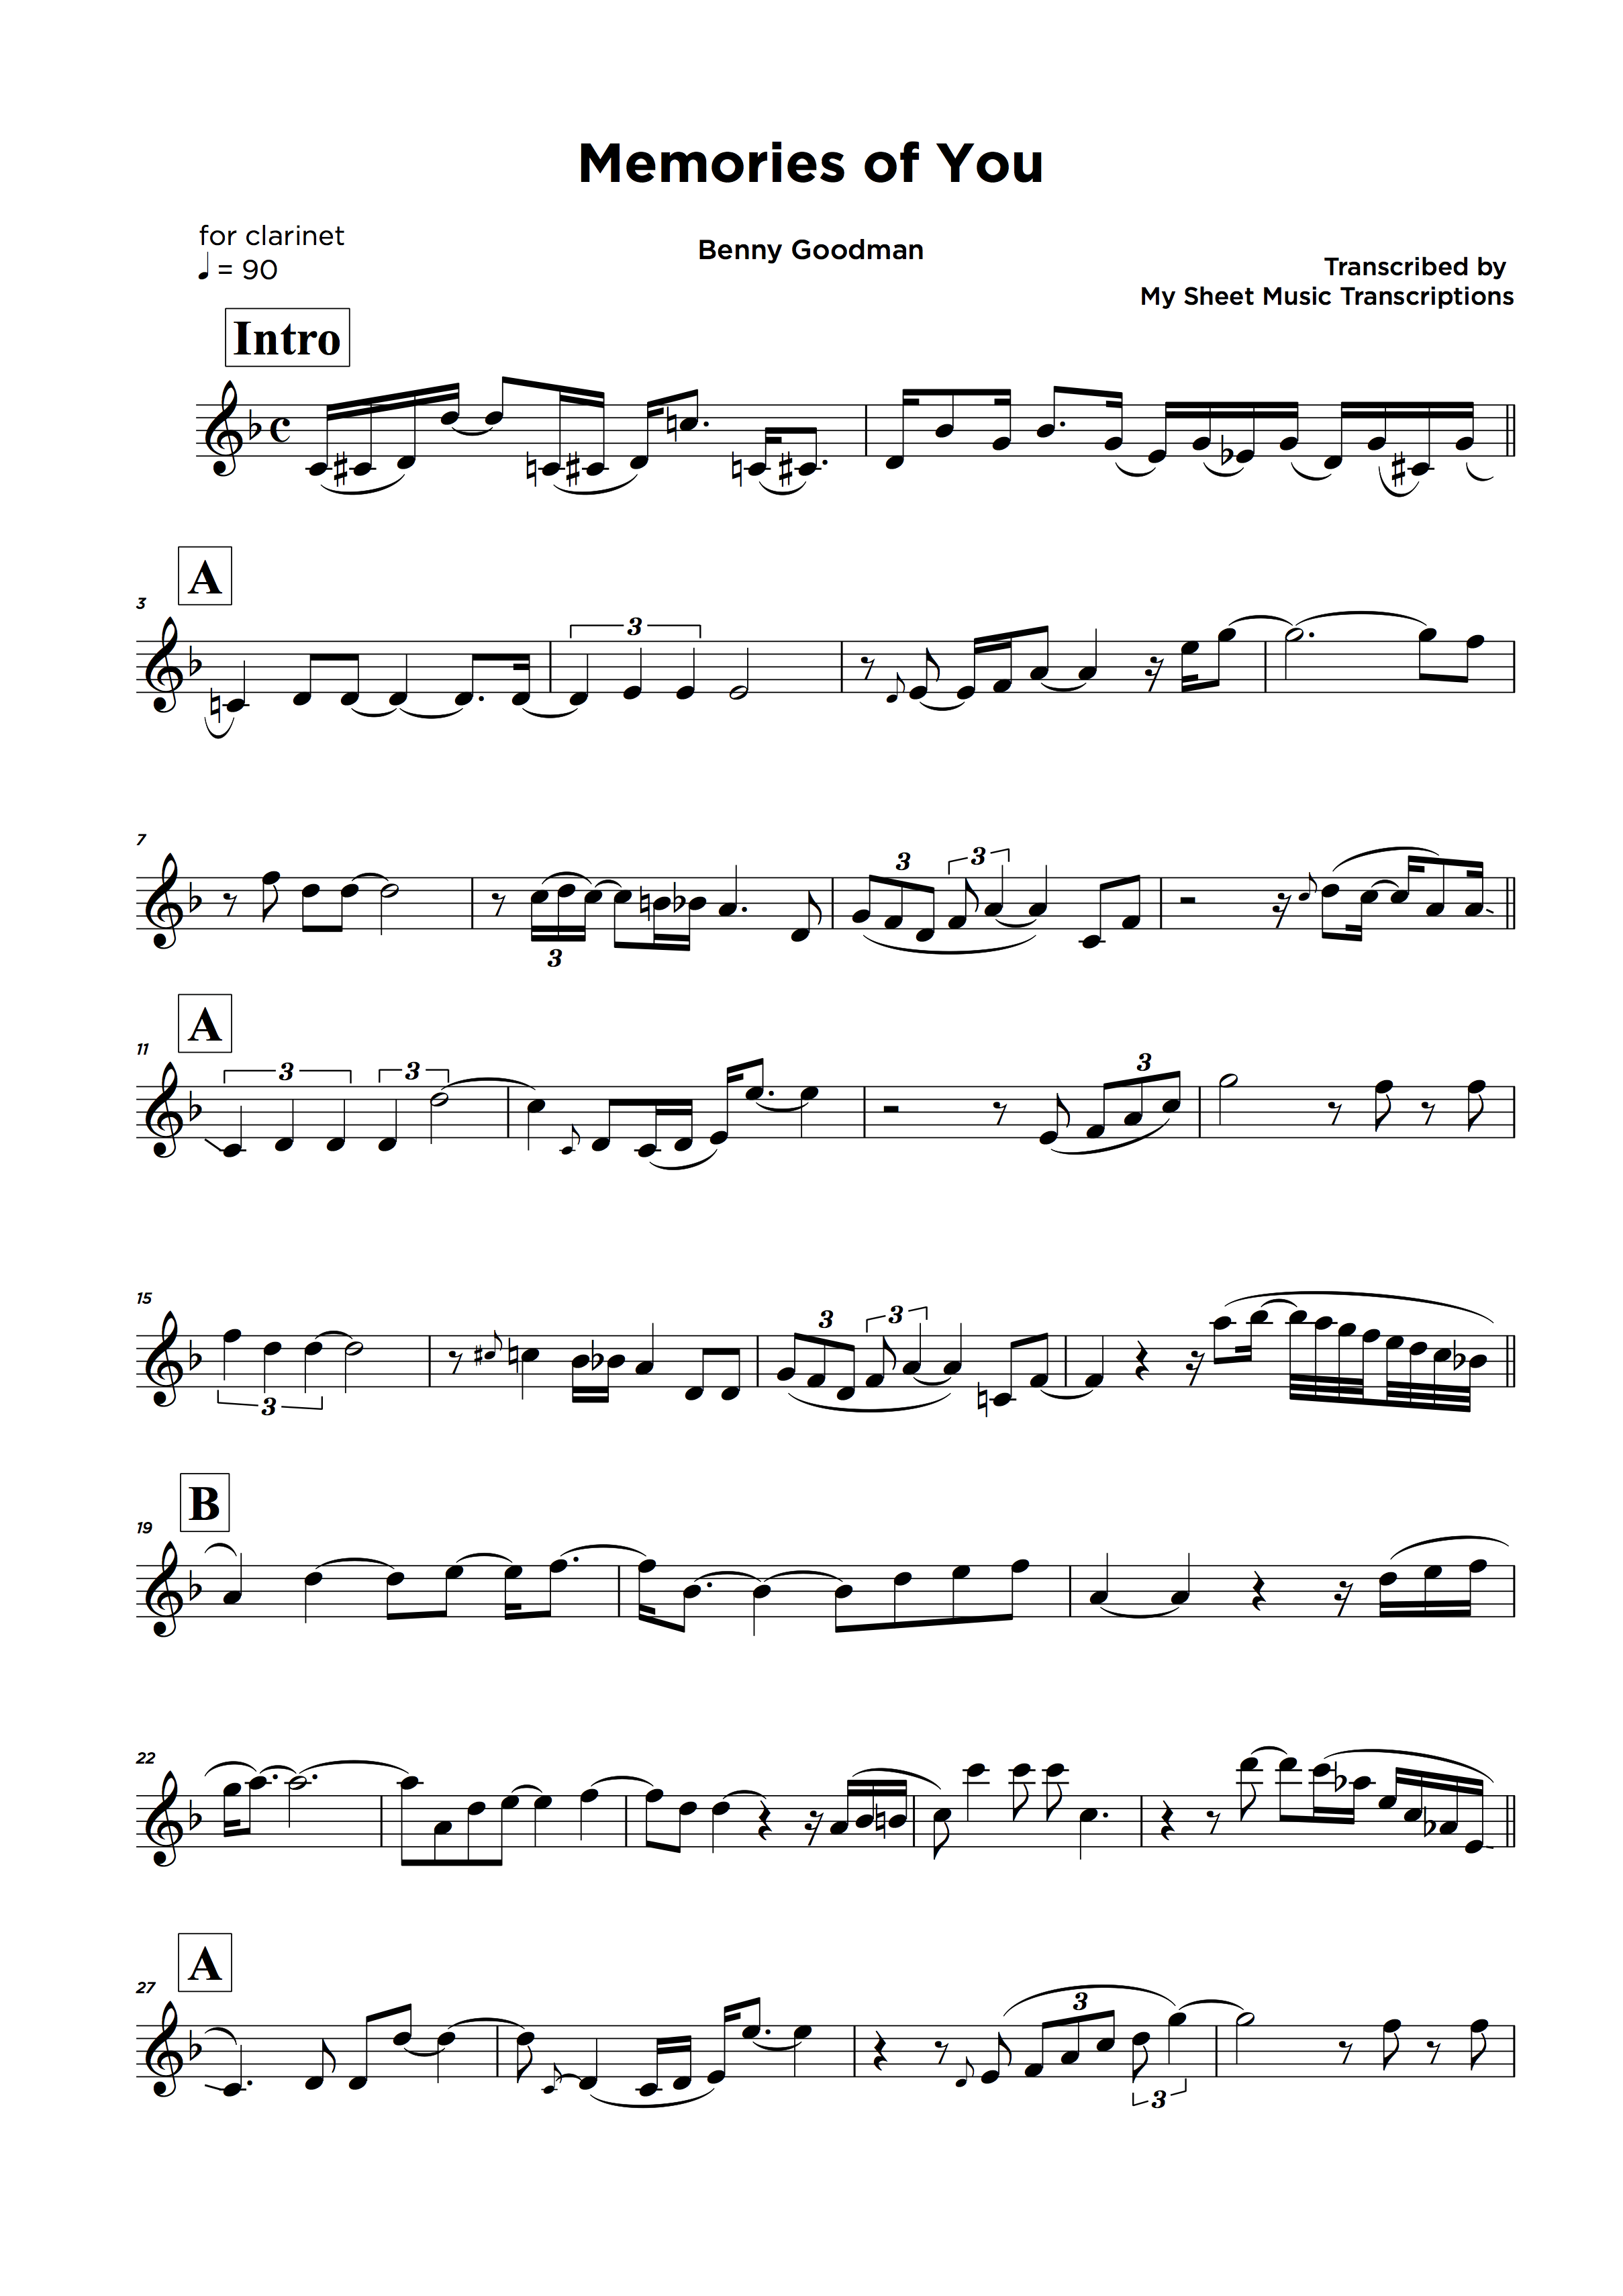 Lead sheet music transcription